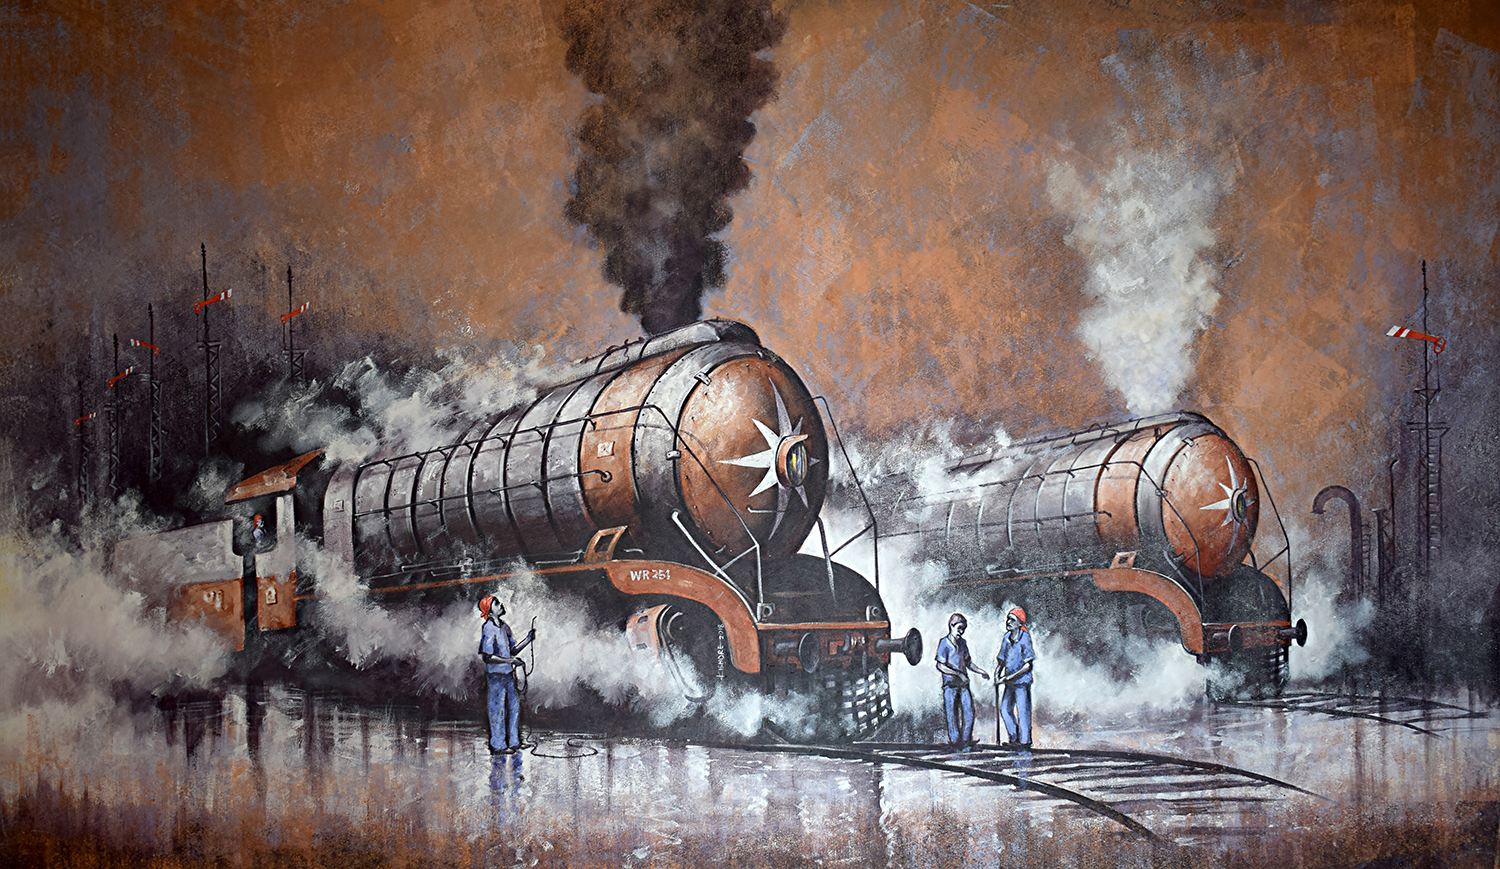 Nostalgia of Indian steam locomotives 41 14725